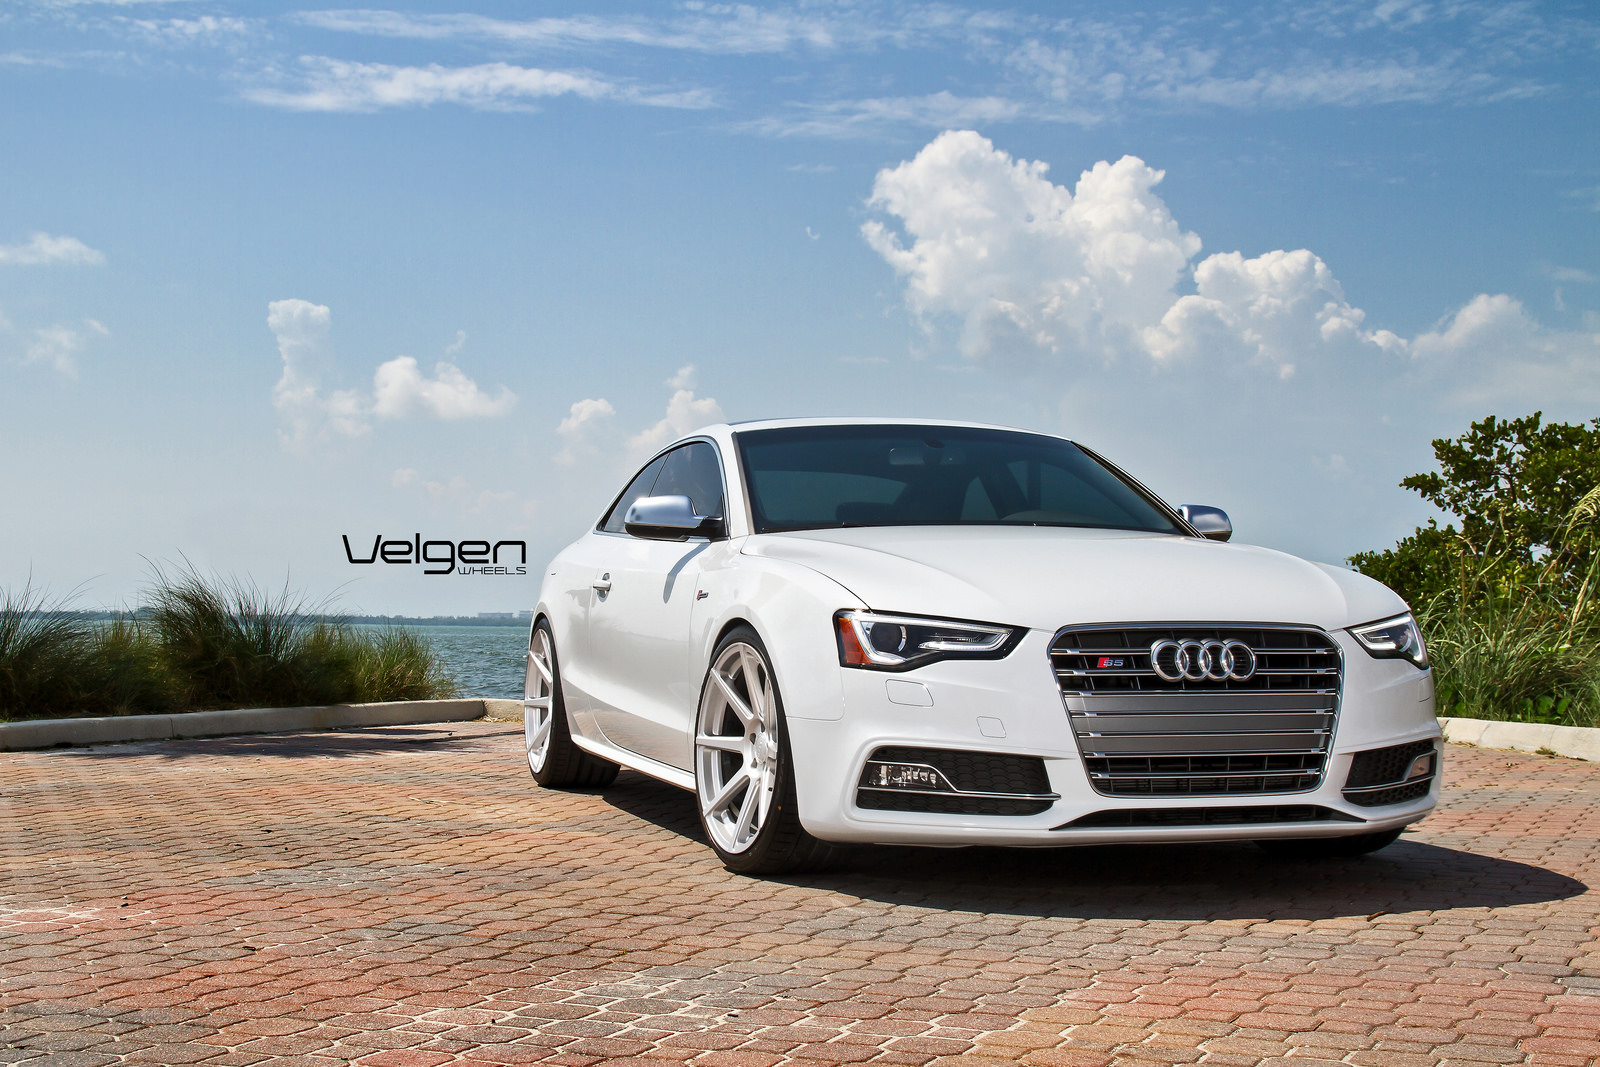 2014 Audi S5 Lowered On Velgen Wheels Gt Autospice